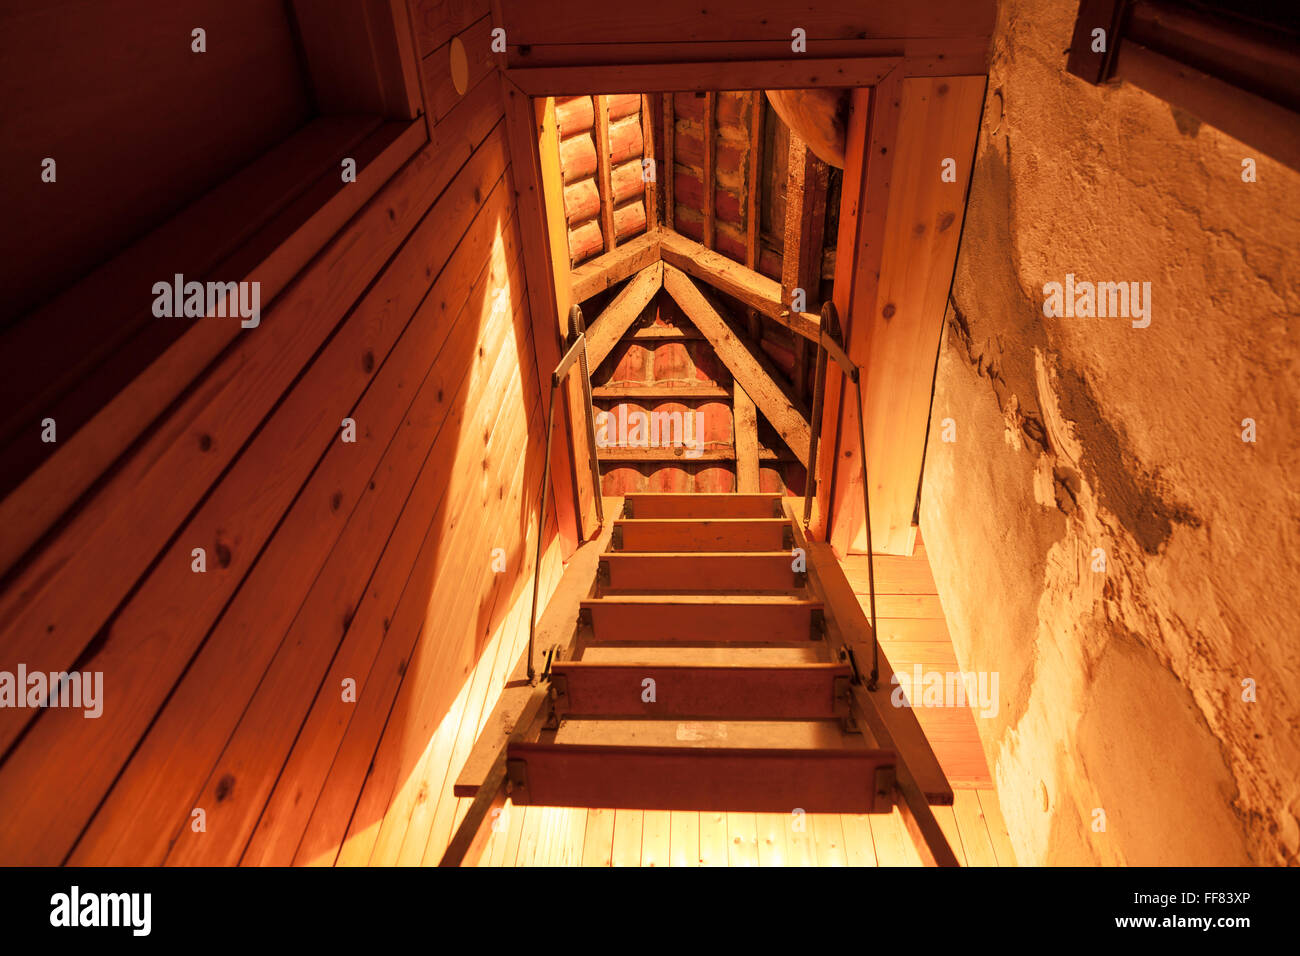 stairs to attic - Stock Image